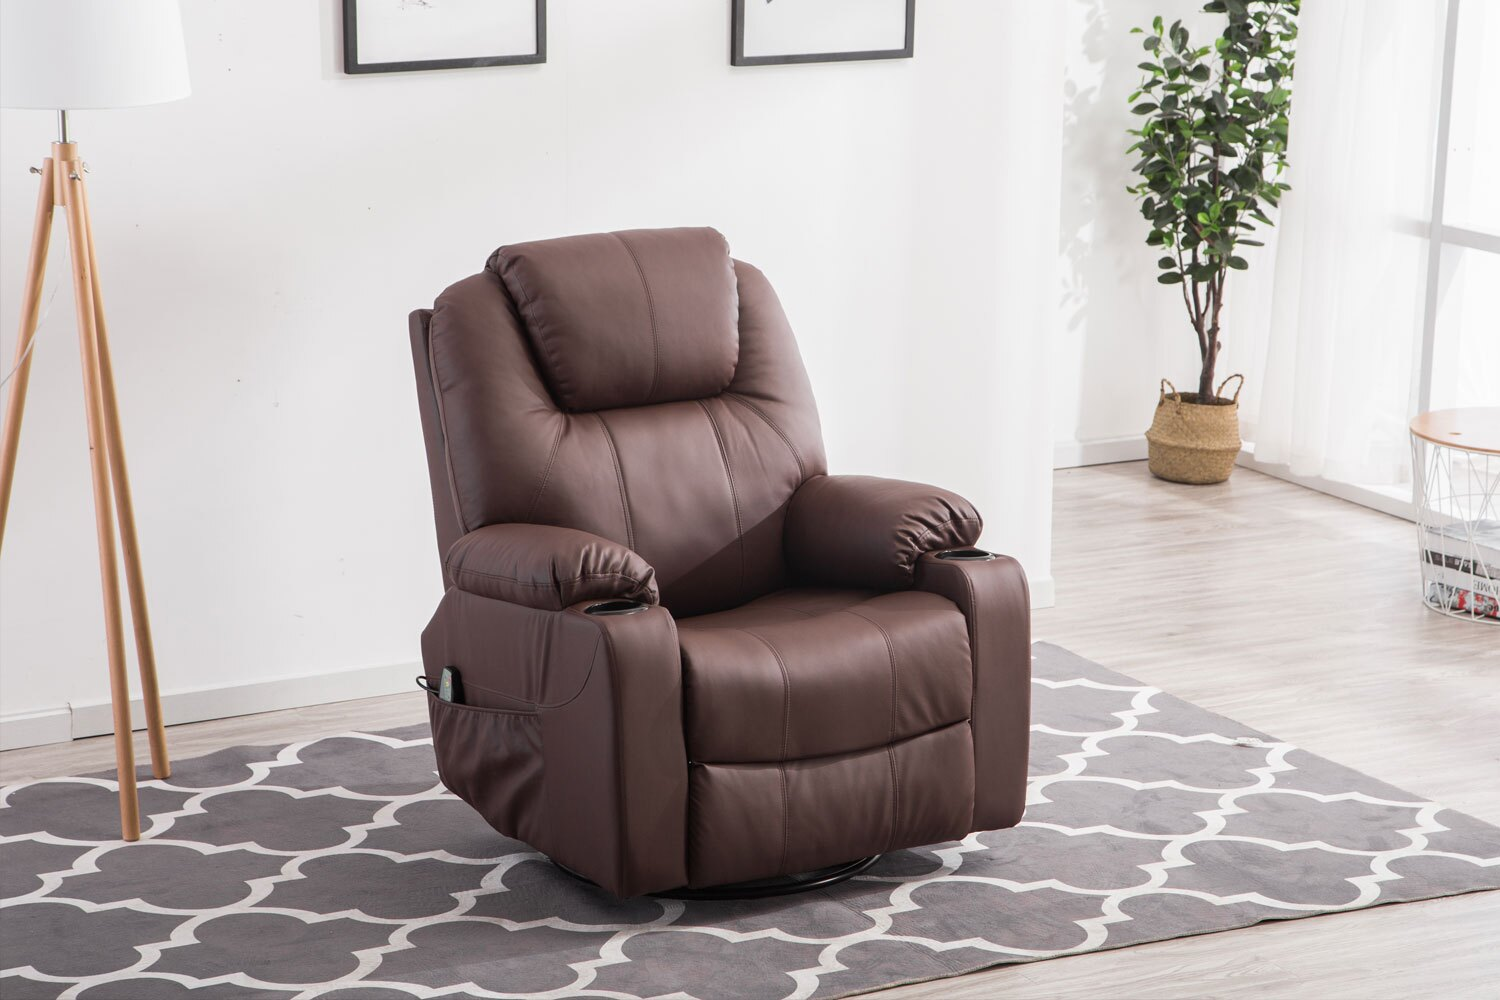 manual contemporary sofa back recliner reclining chair foldable rakuten leather costway shop product